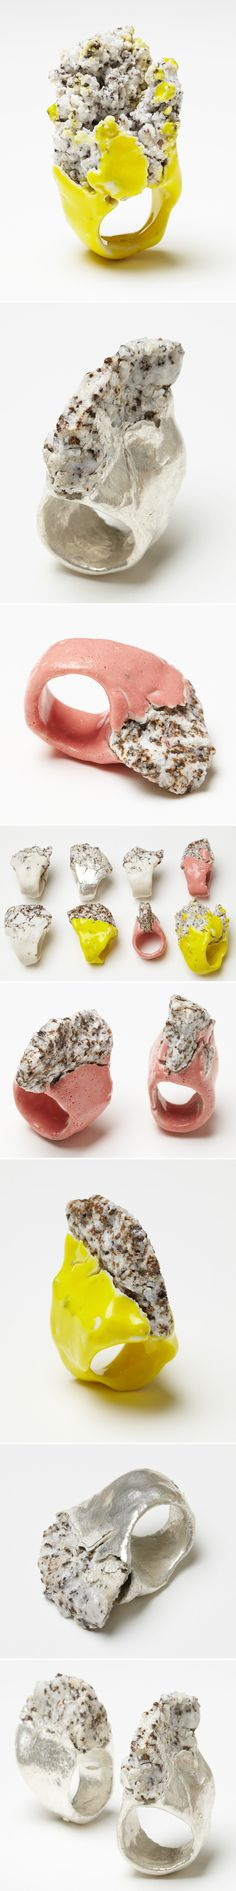 aneta_regel #ring #jewelry #ceramic #jewellery